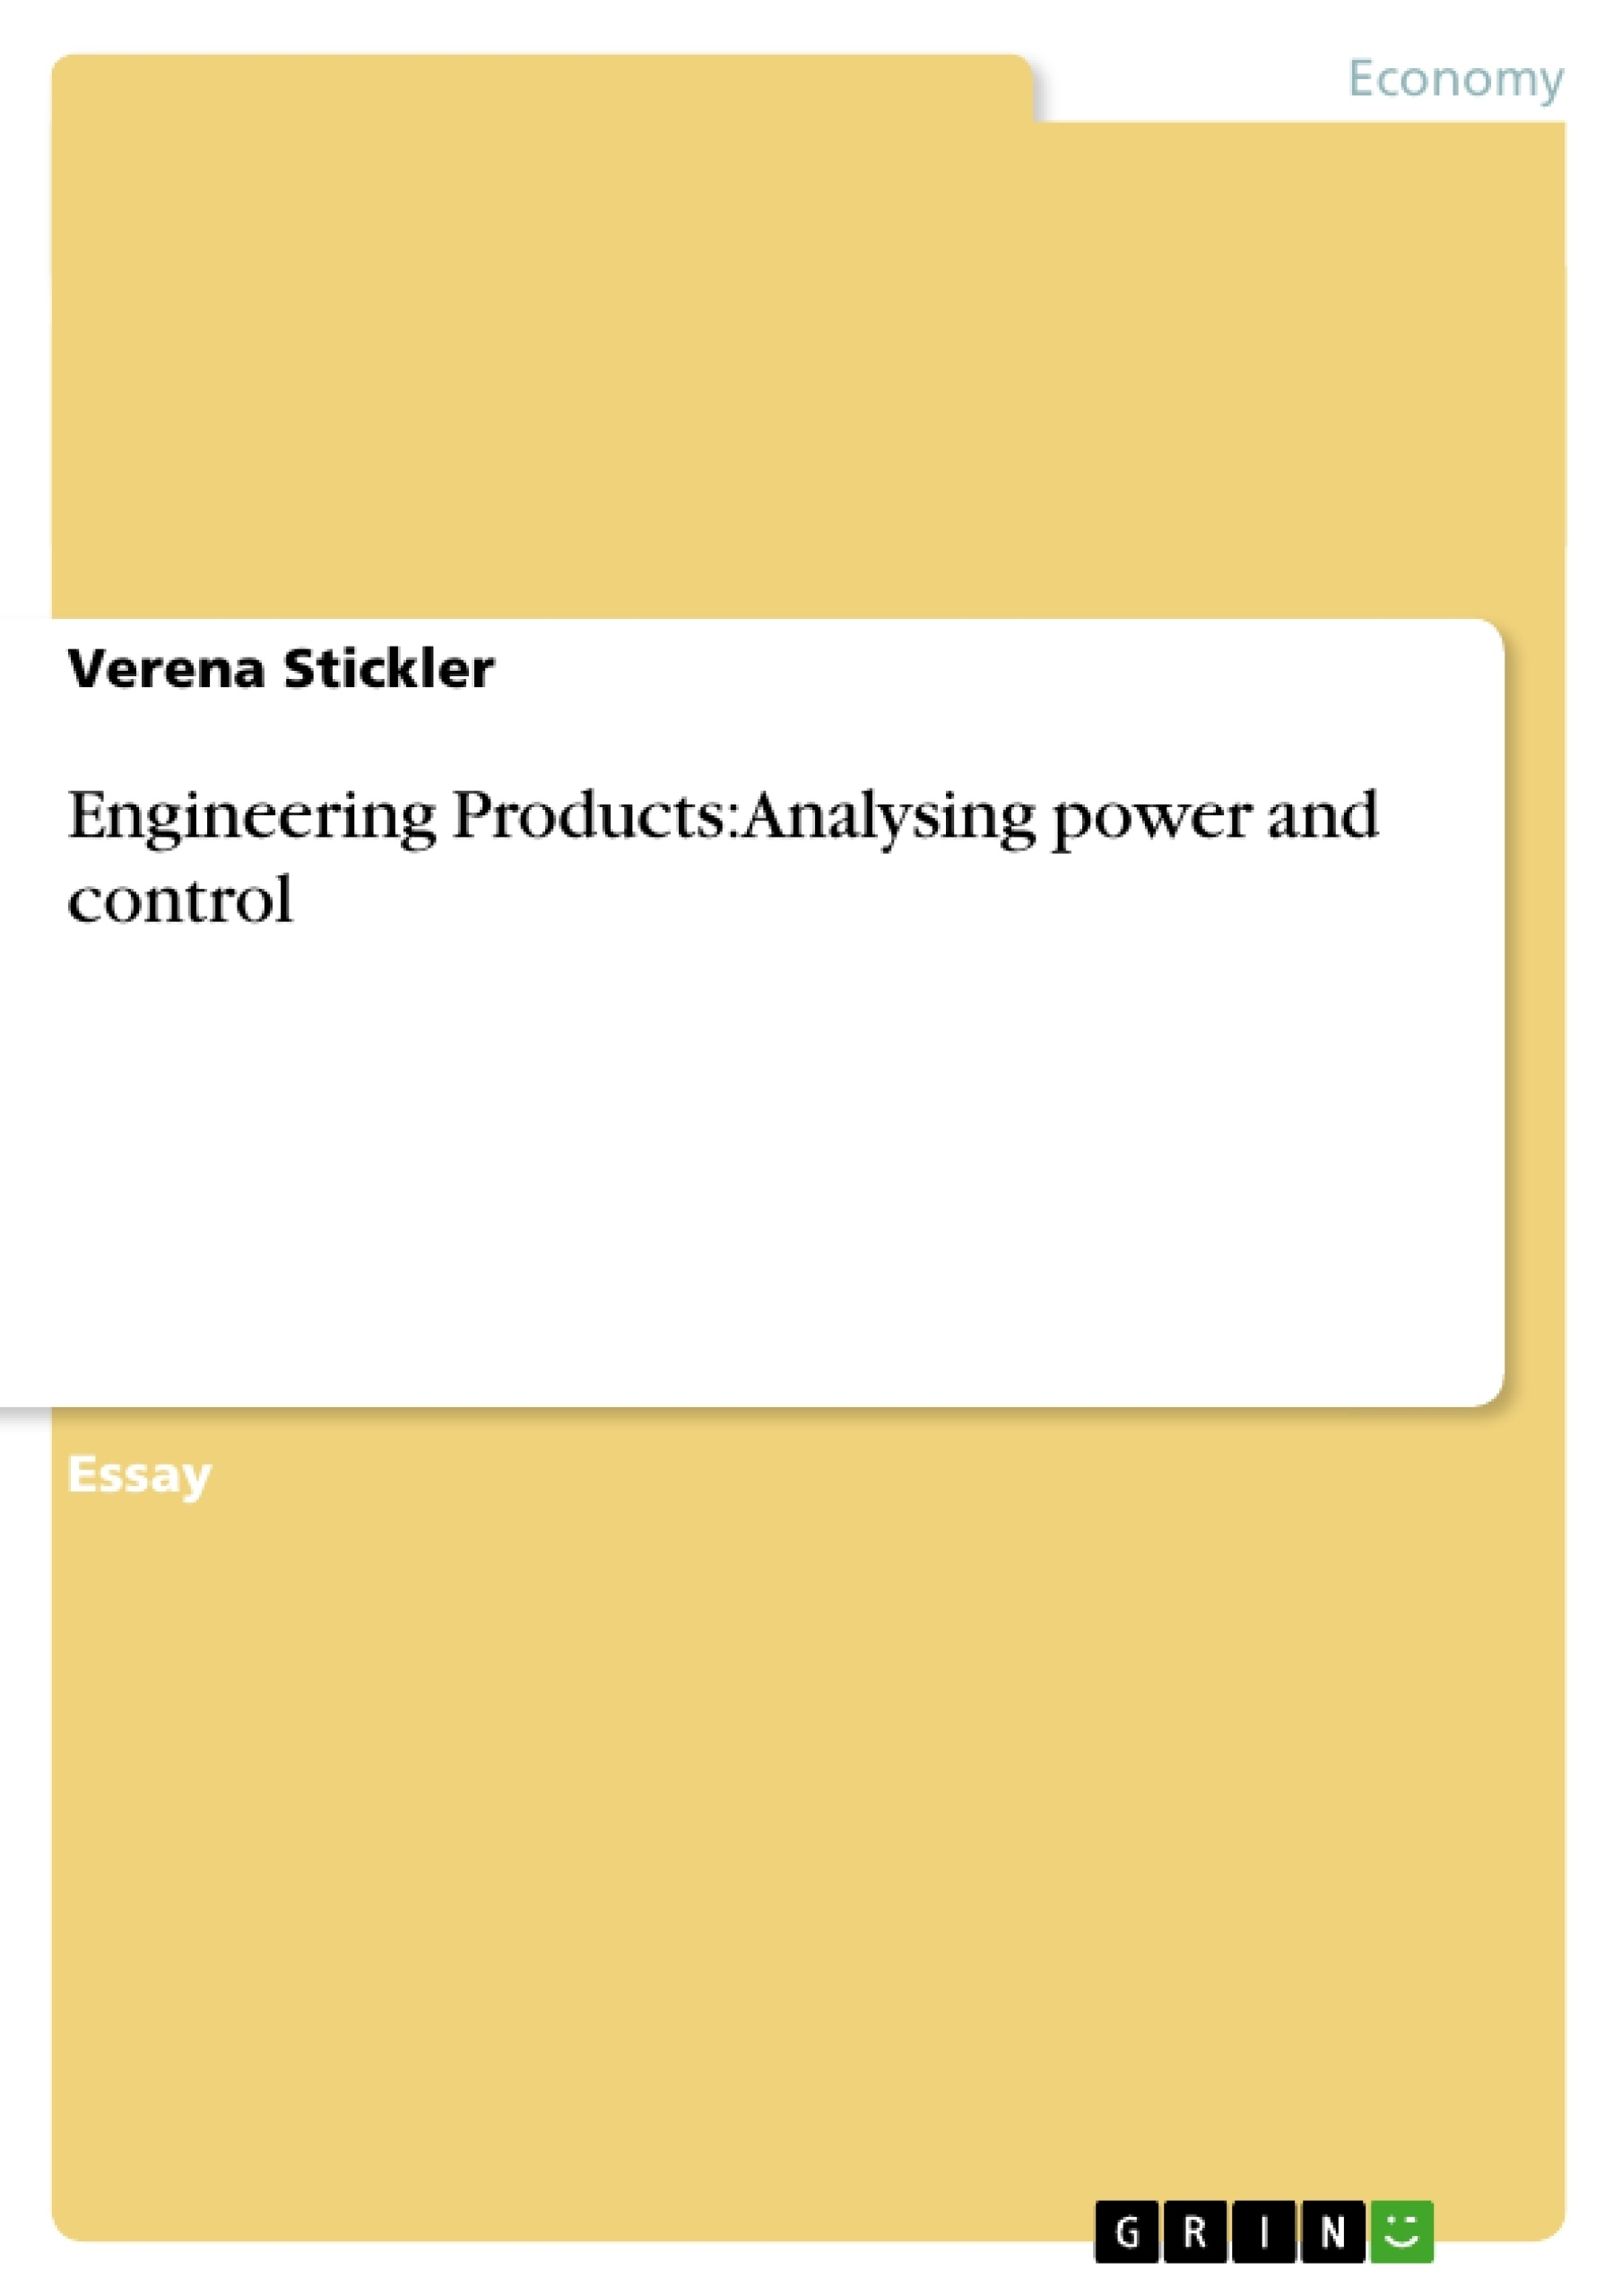 Title: Engineering Products: Analysing power and control